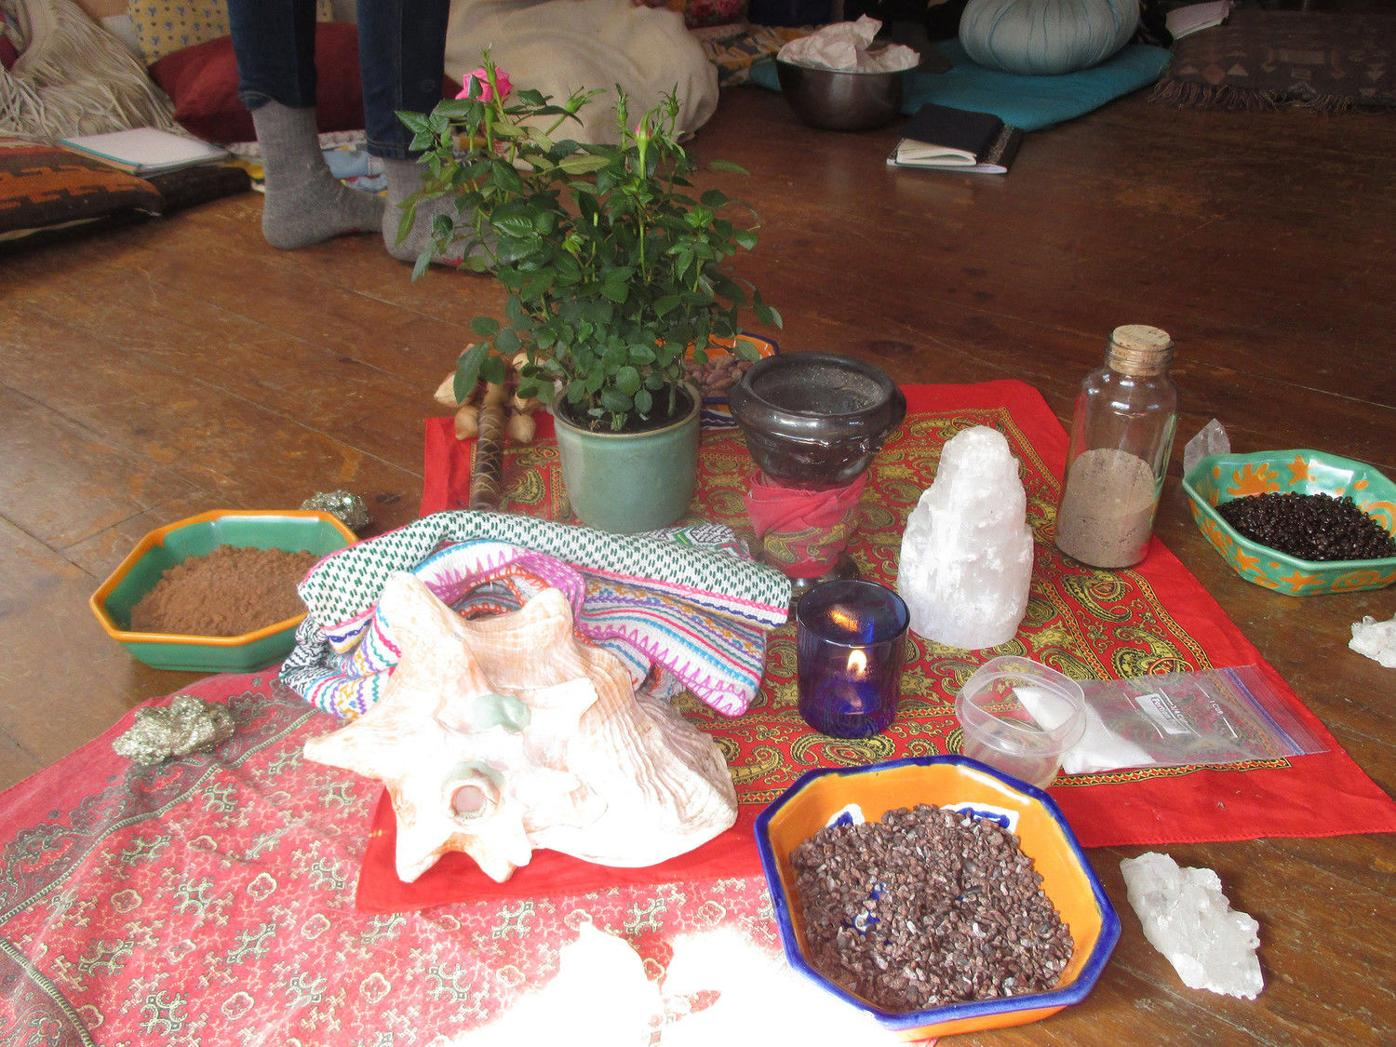 Native Roots courses explore ancient health knowledge